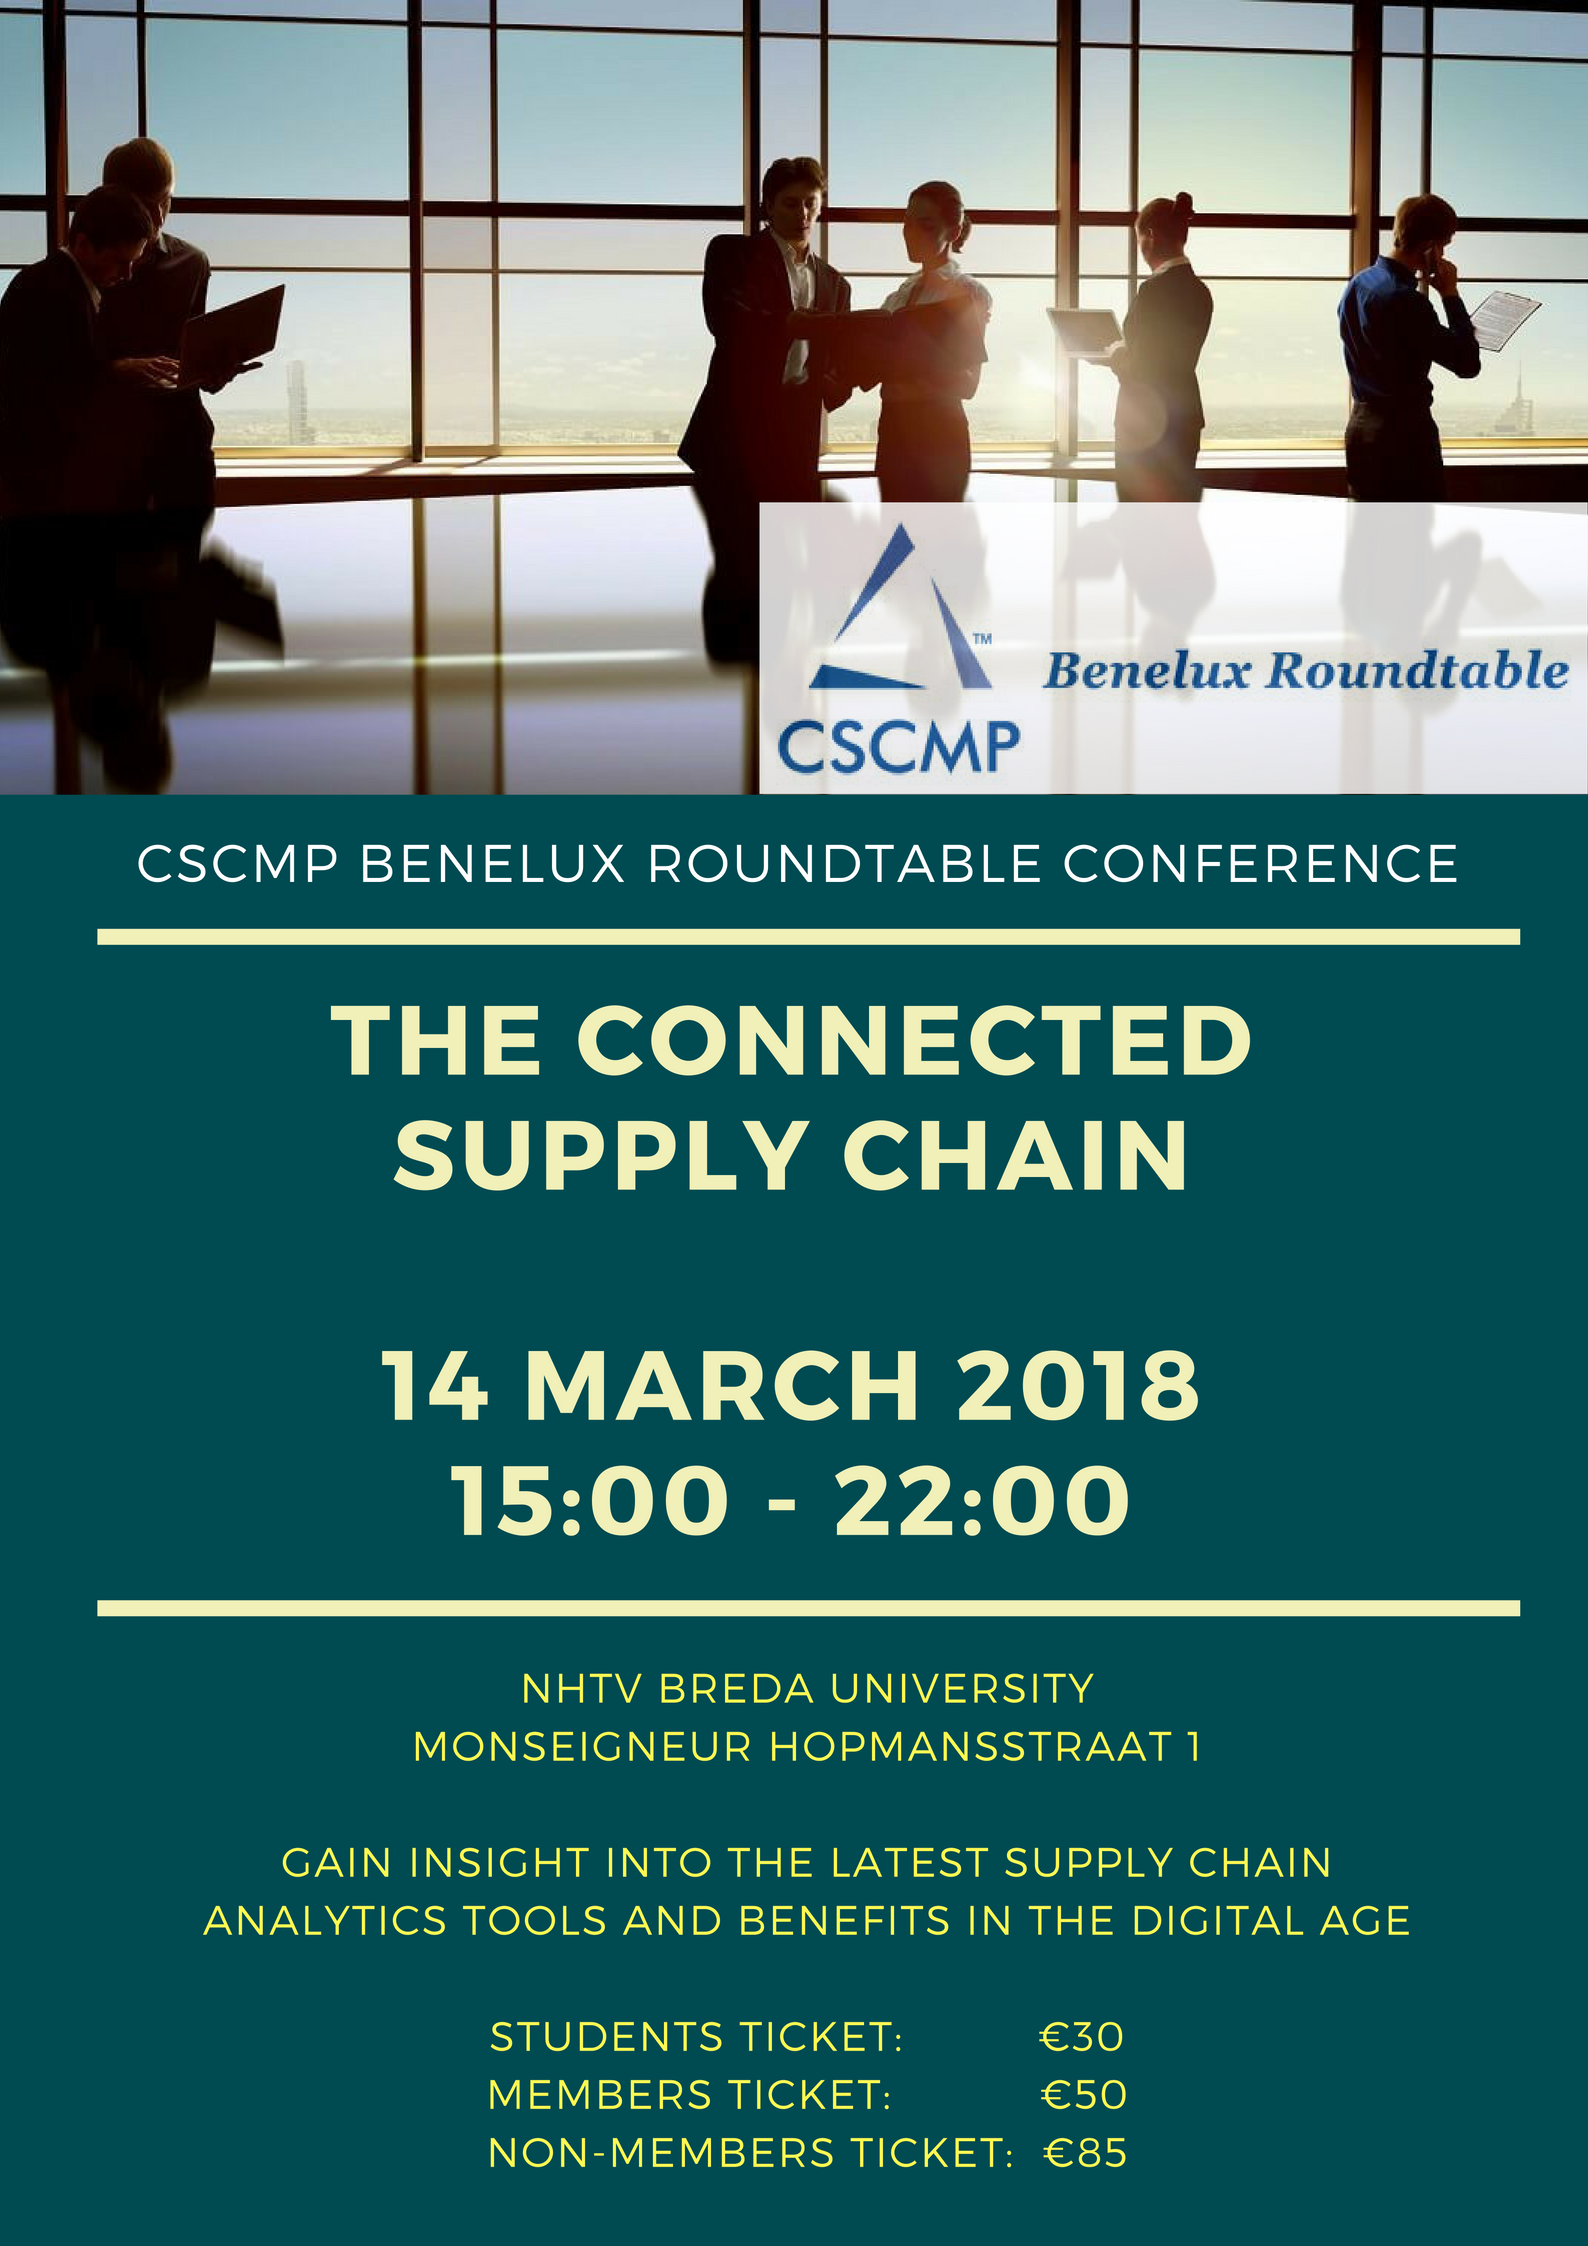 The Connected Supply Chain Event – 14 March 2018